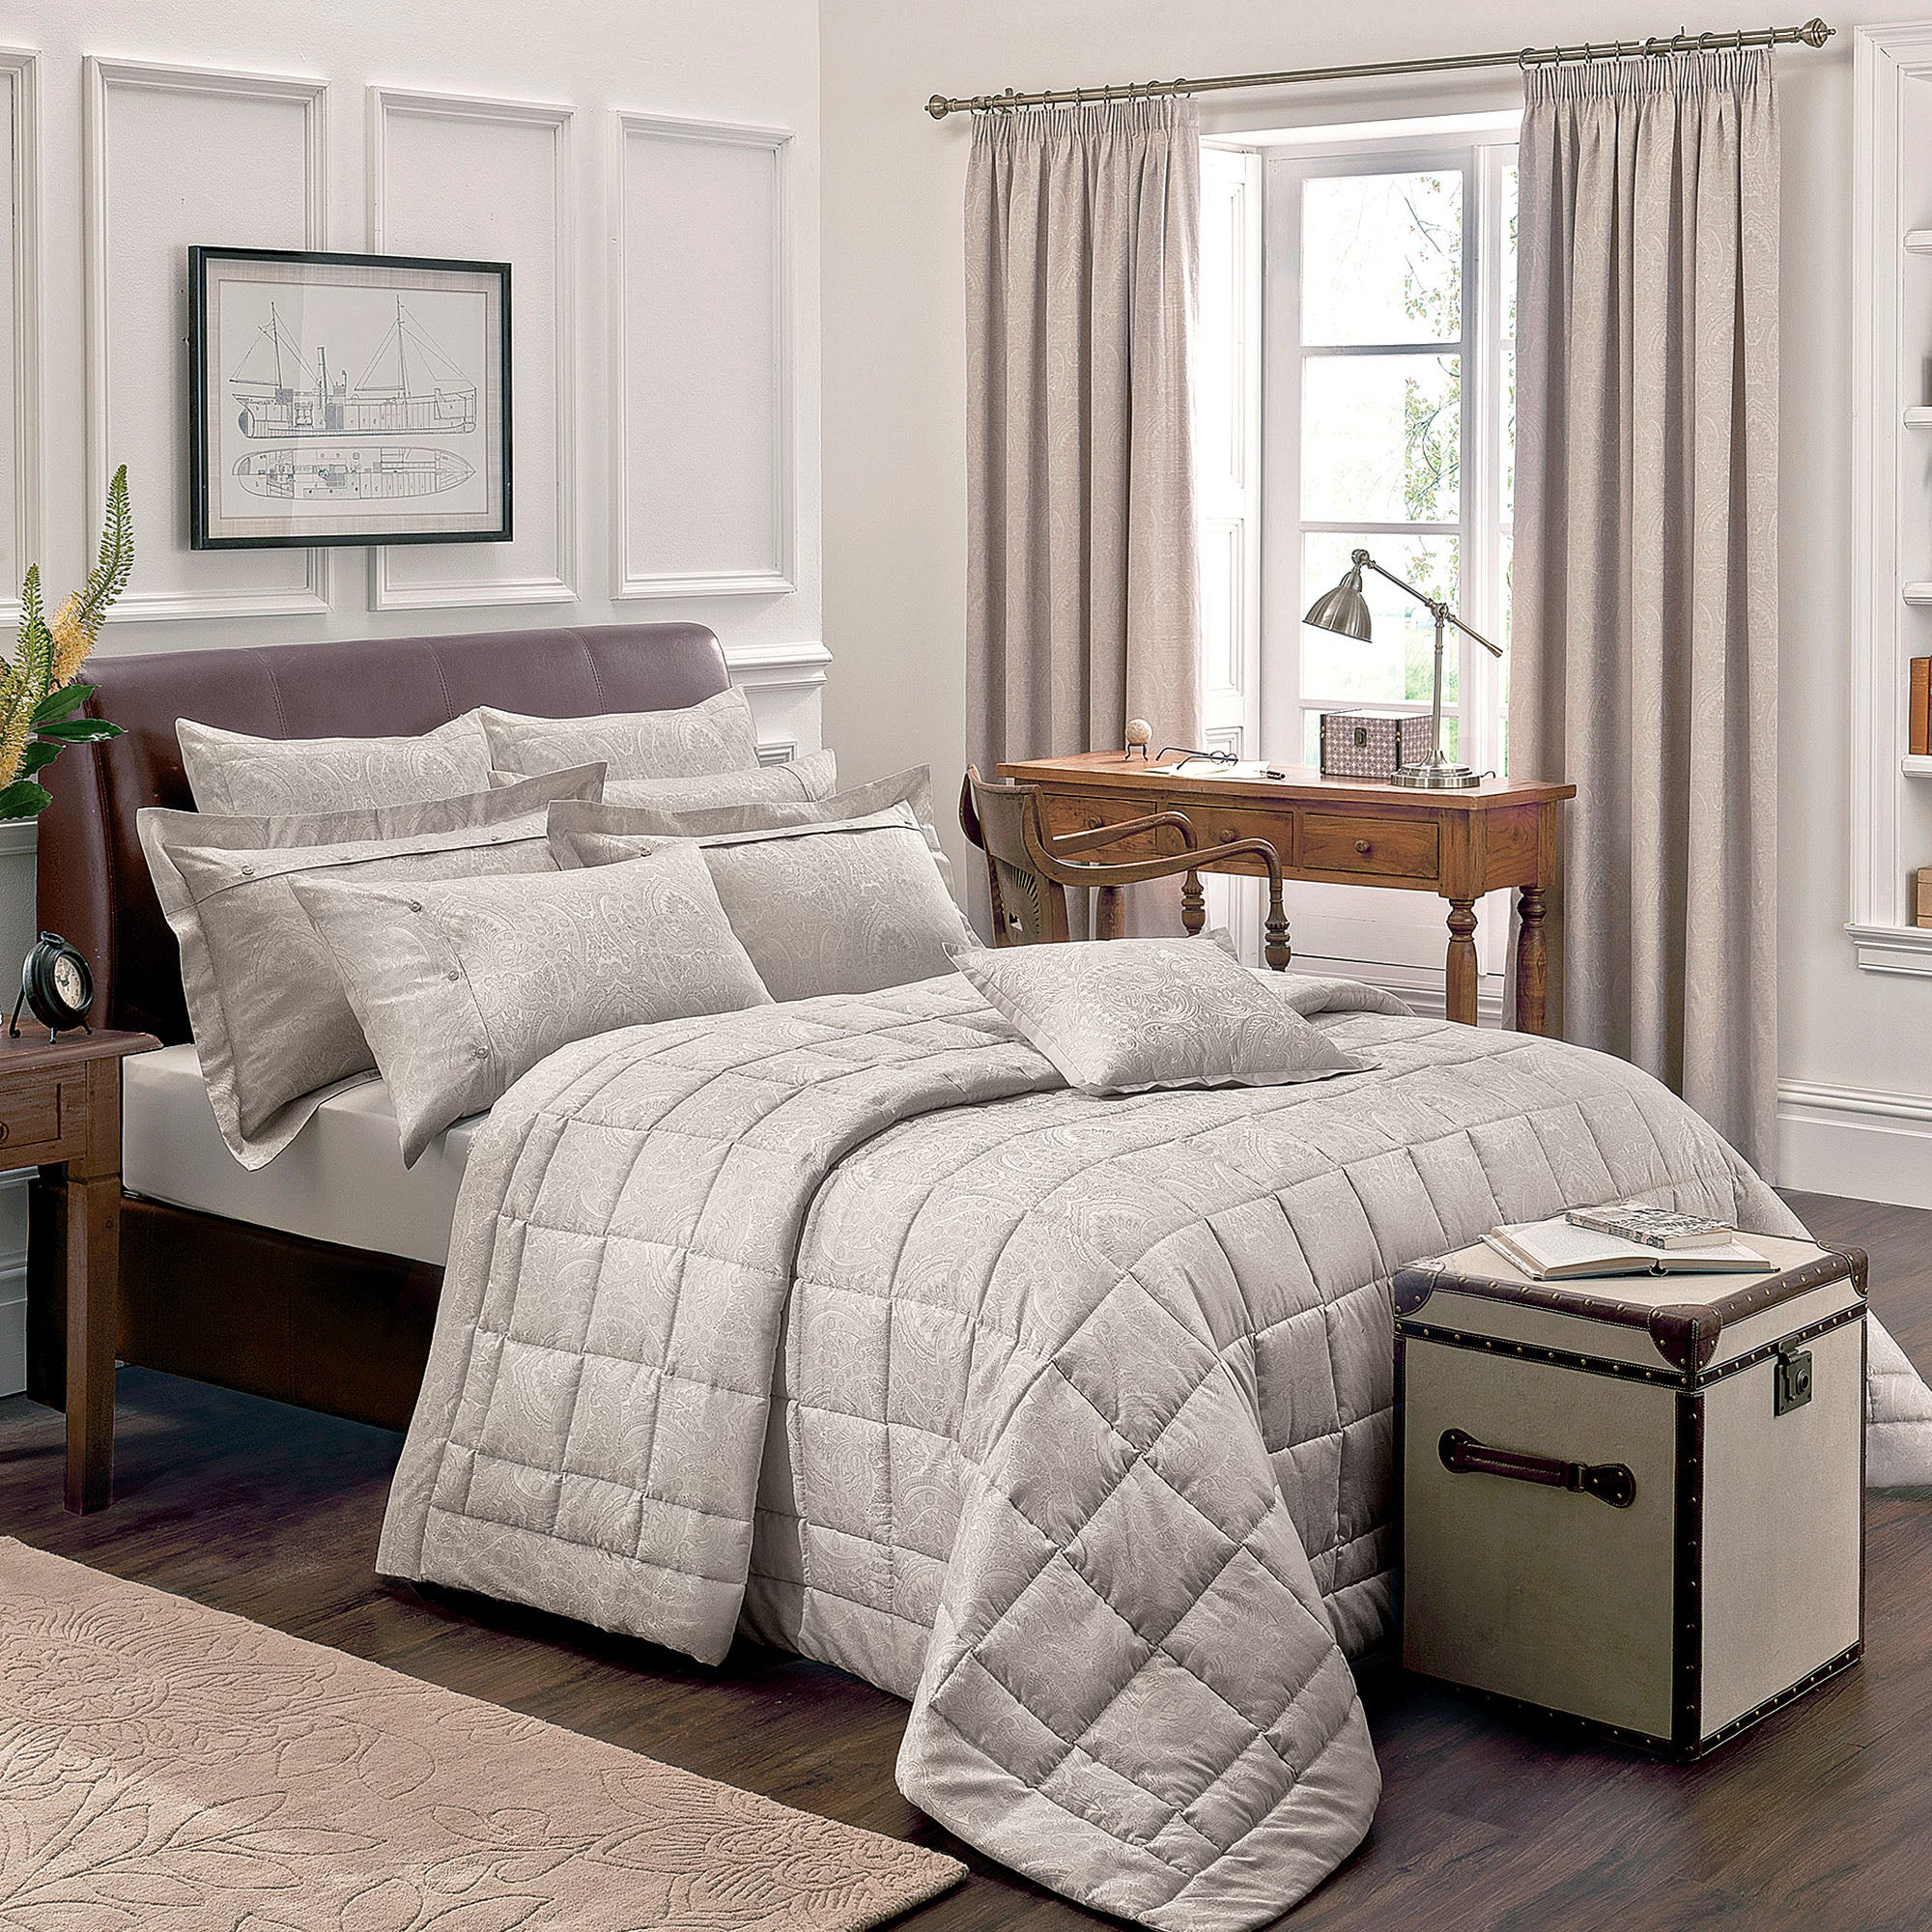 Dorma Natural Paisley Collection Bedspread